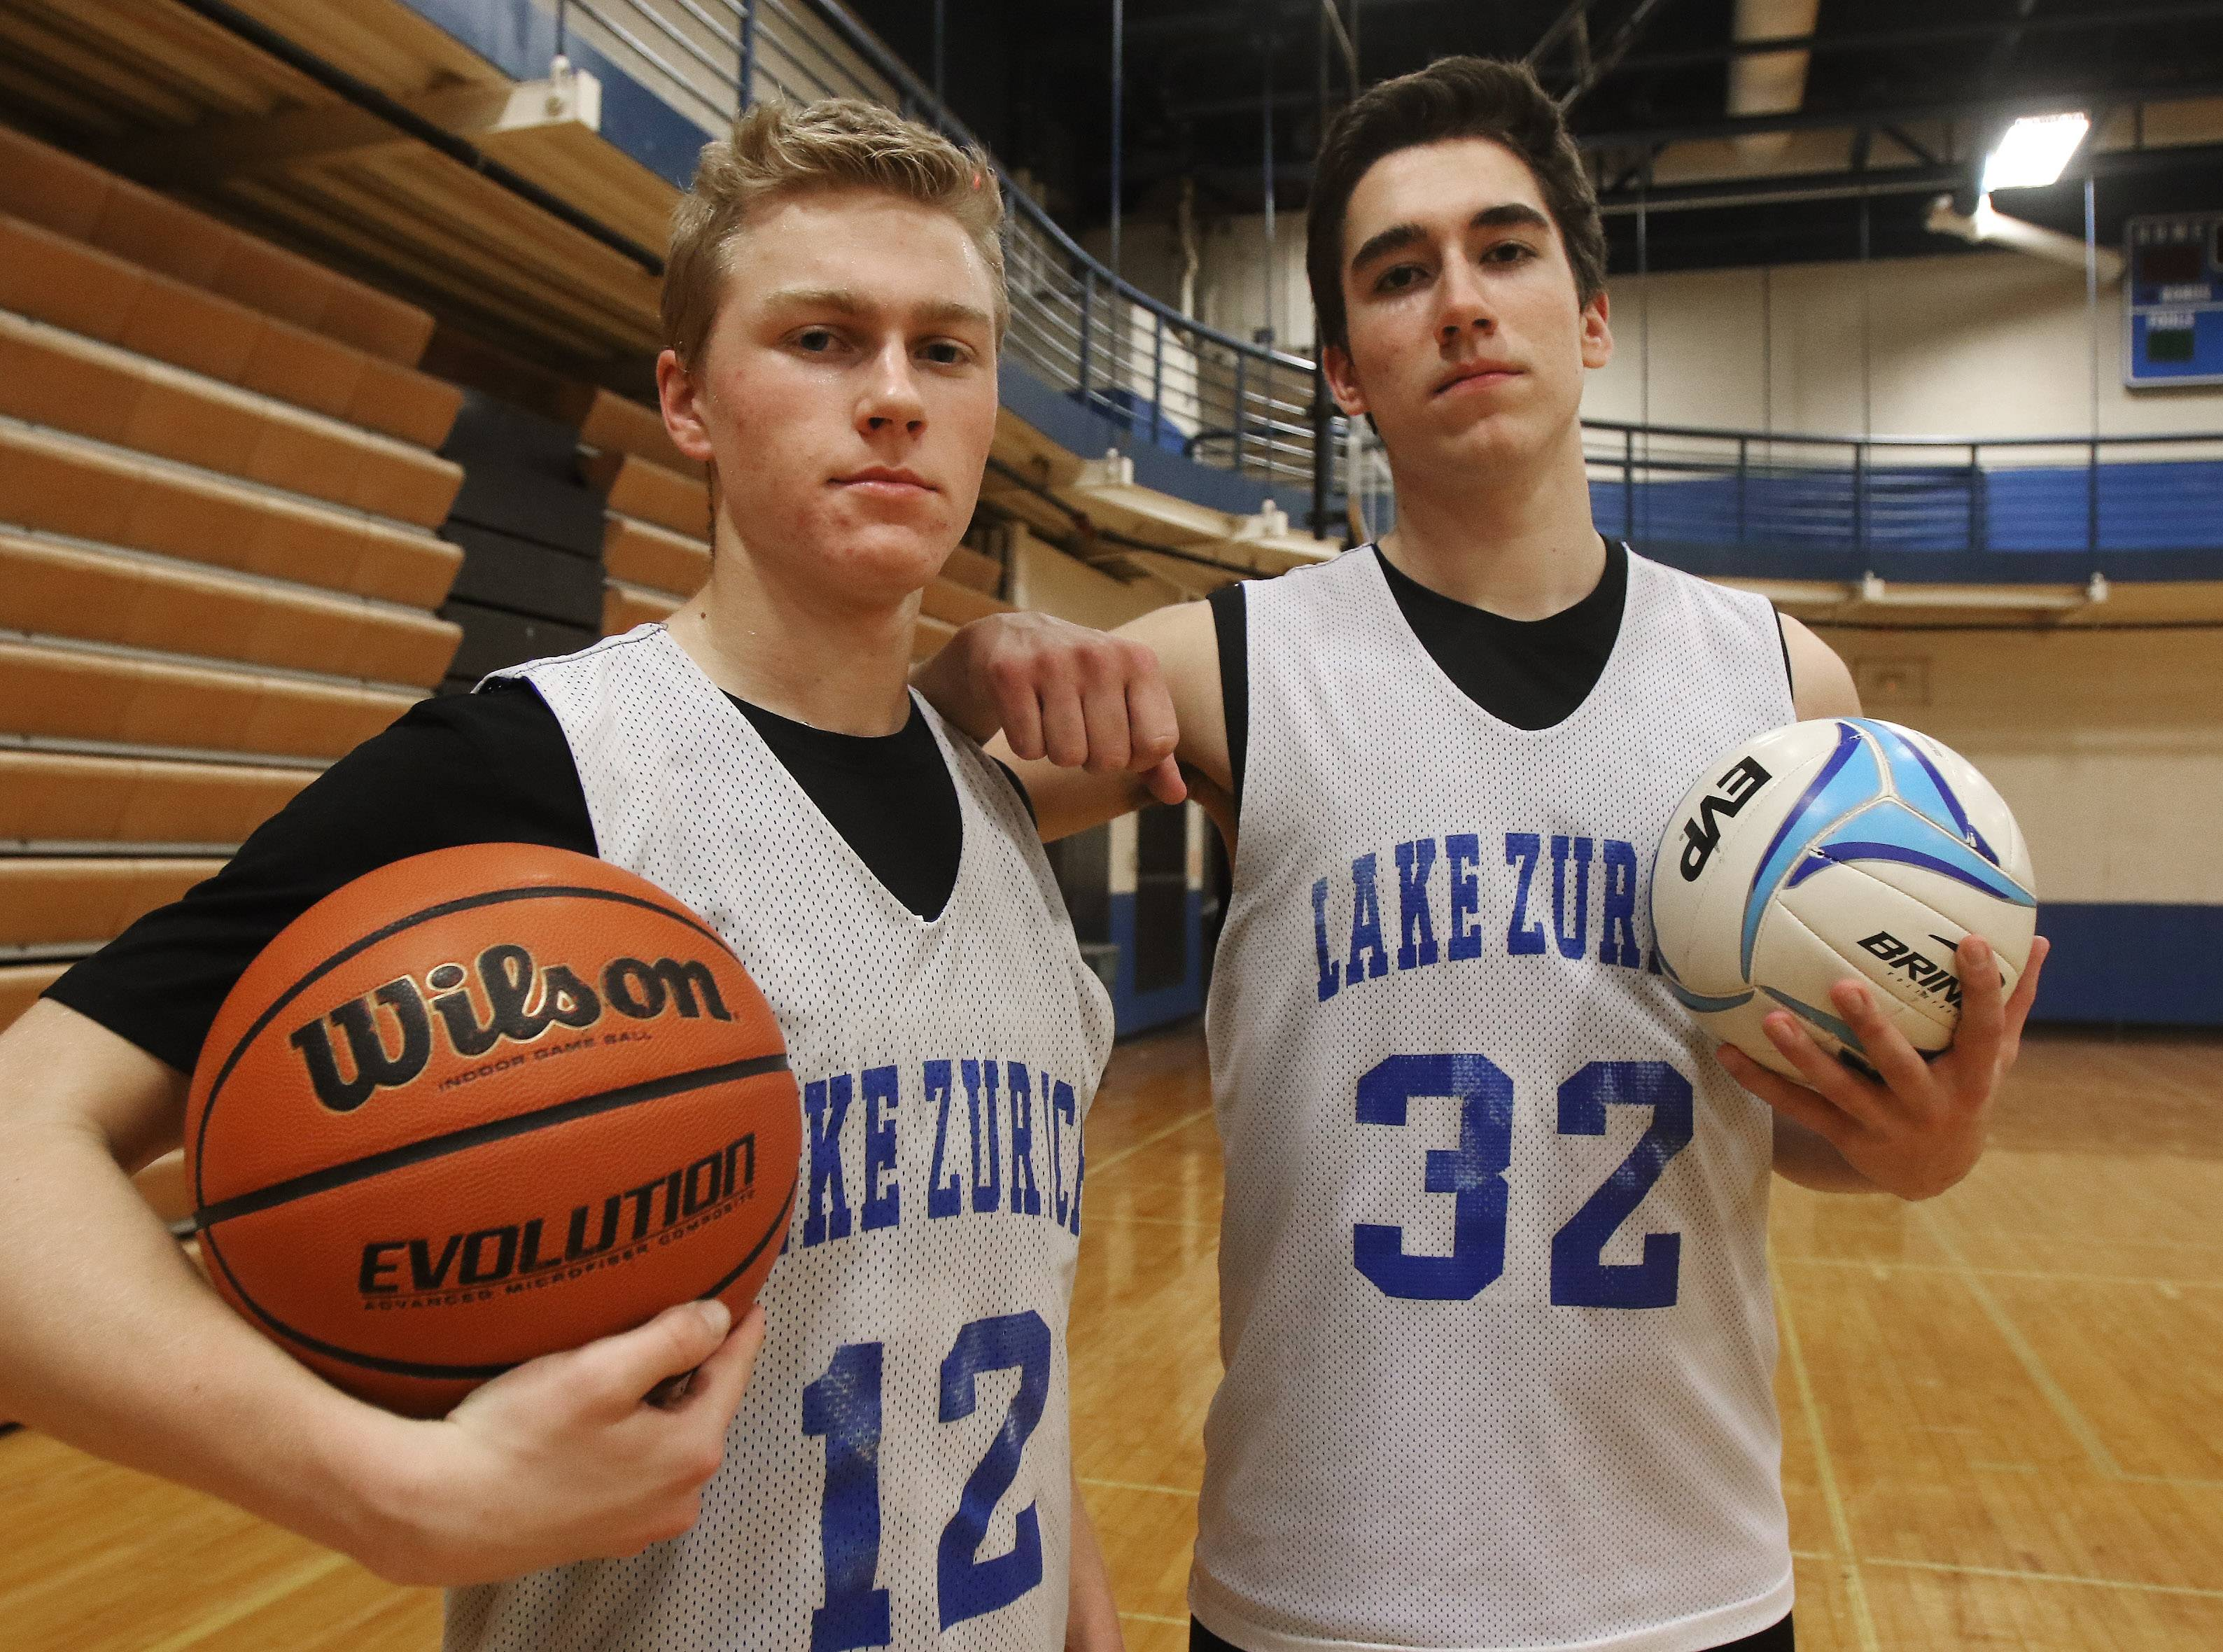 Joe Heffernan, left, and Tyler Sarvady are examples of multi-sports athletes currently thriving in Lake Zurich's basketball program.